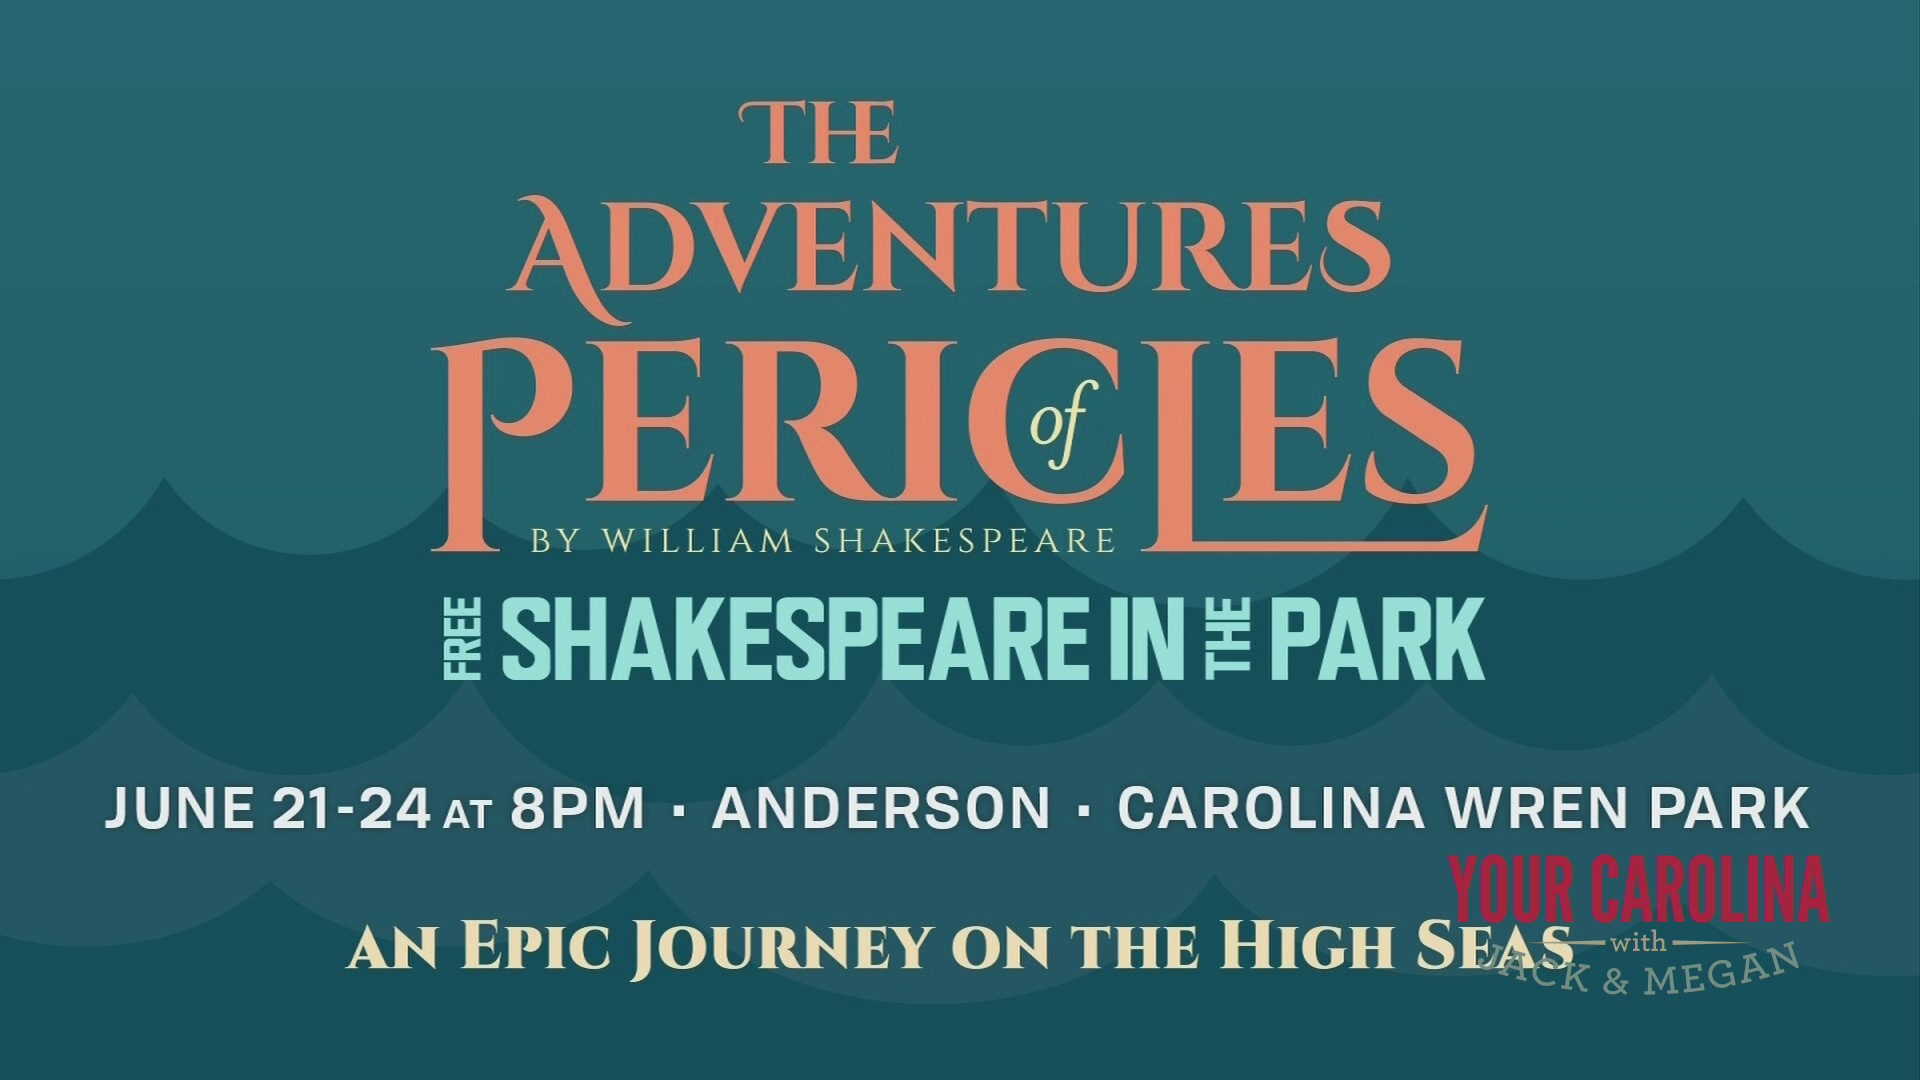 Anderson's fifth annual Free Shakespeare in the Park